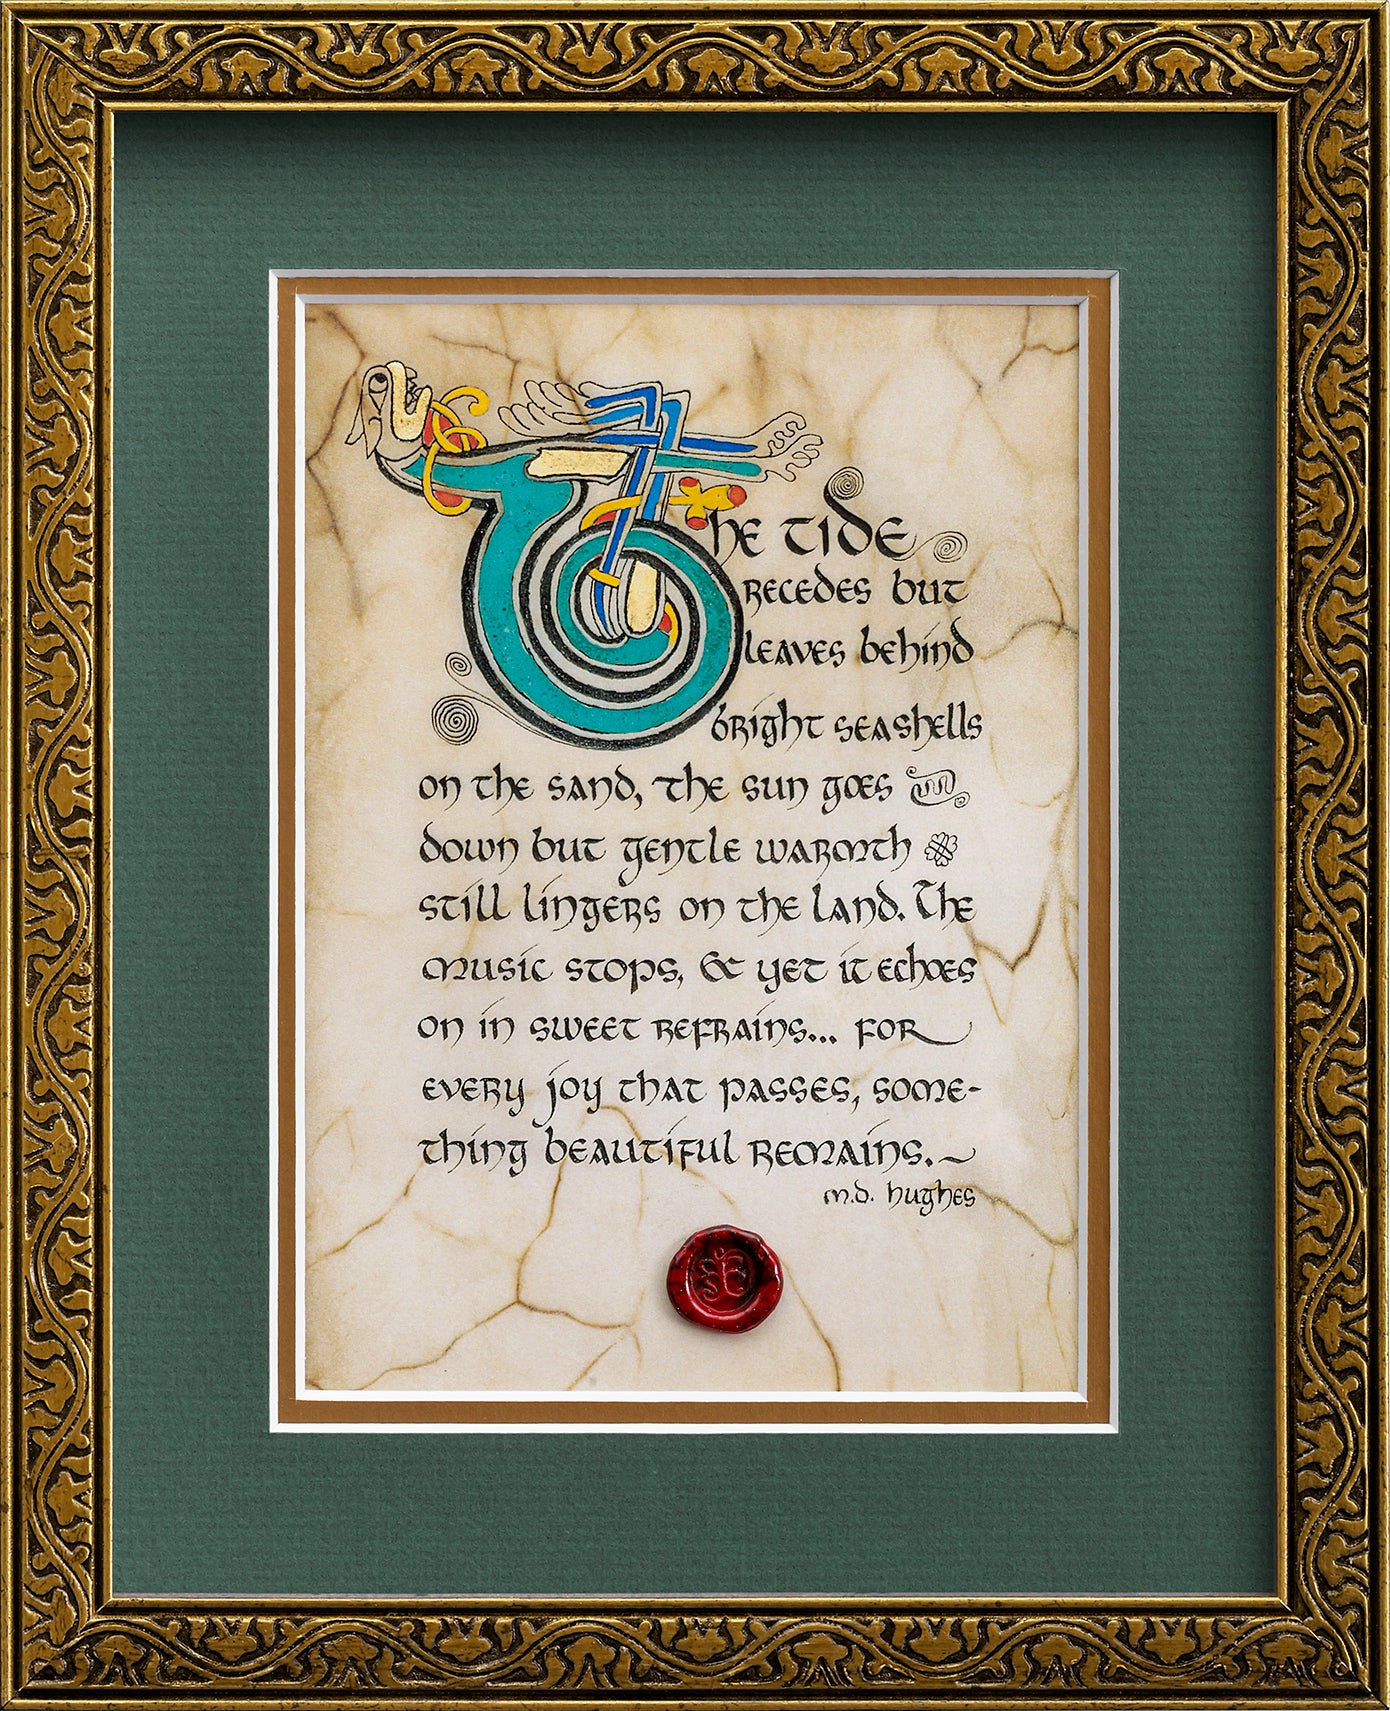 Something Beautiful Remains - Framed Celtic Art Print